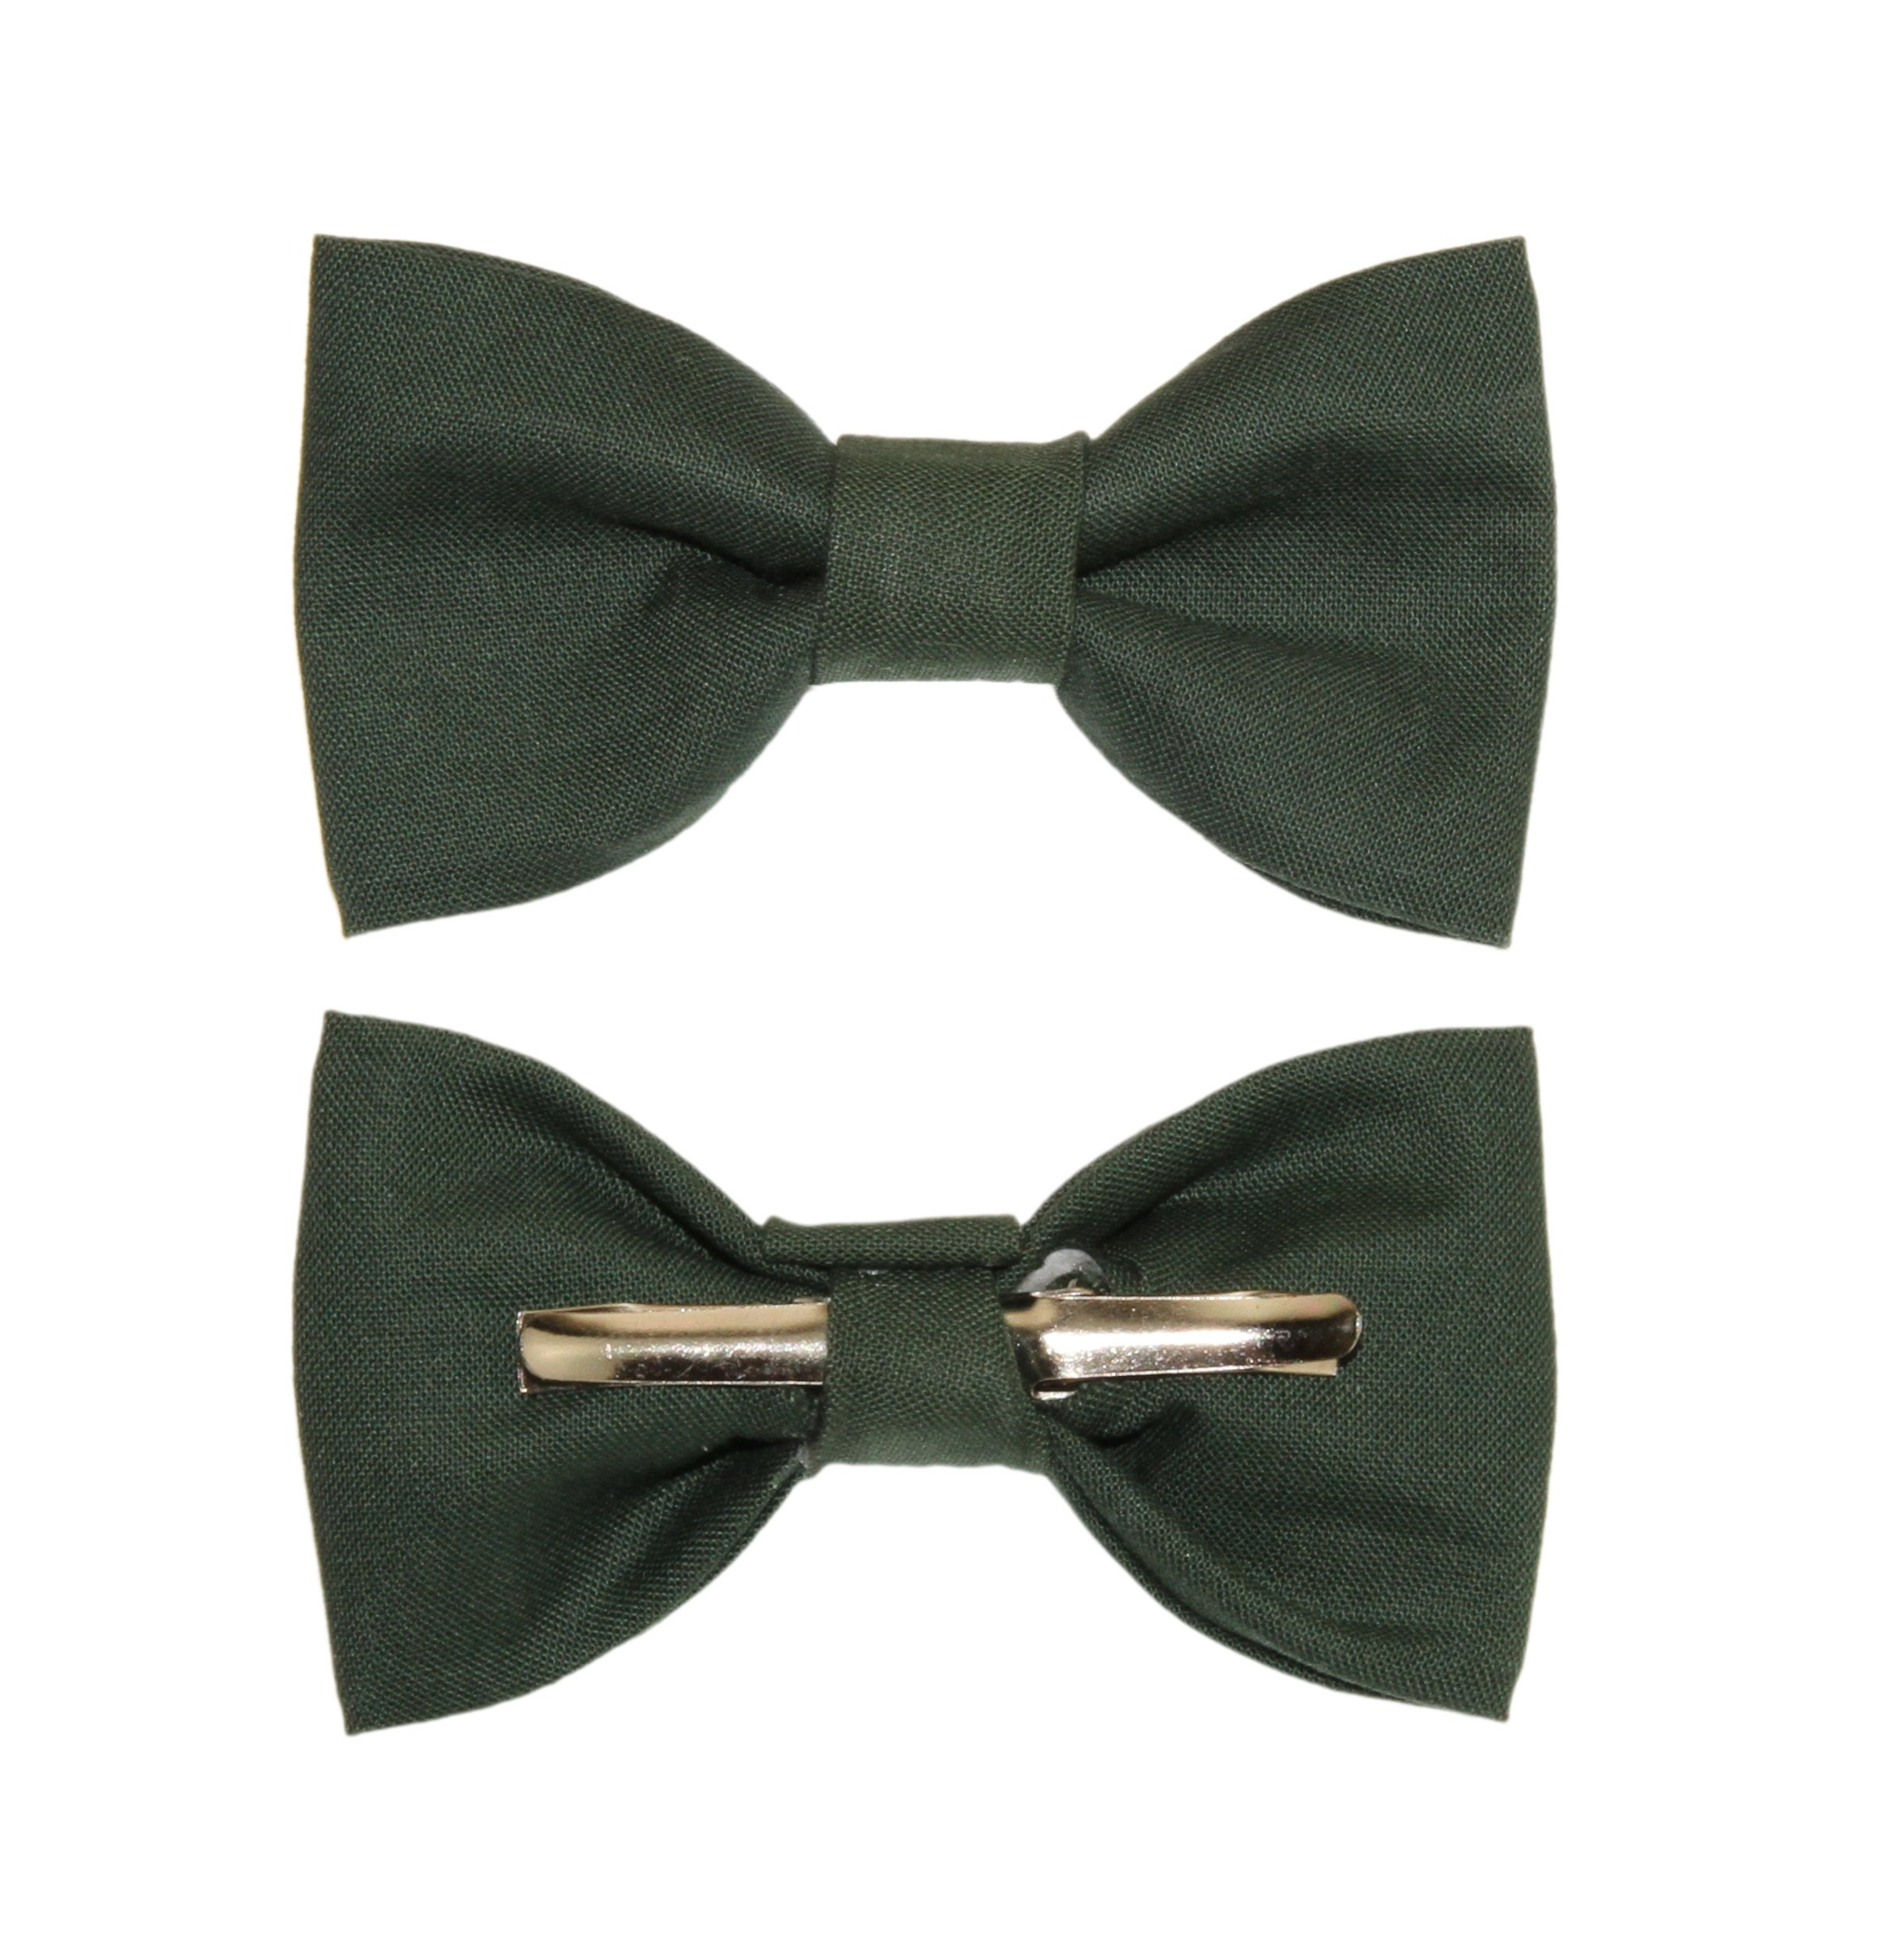 Toddler Boy 4T 5T Boys Hunter Green Clip On Cotton Bow Tie - Made In The USA